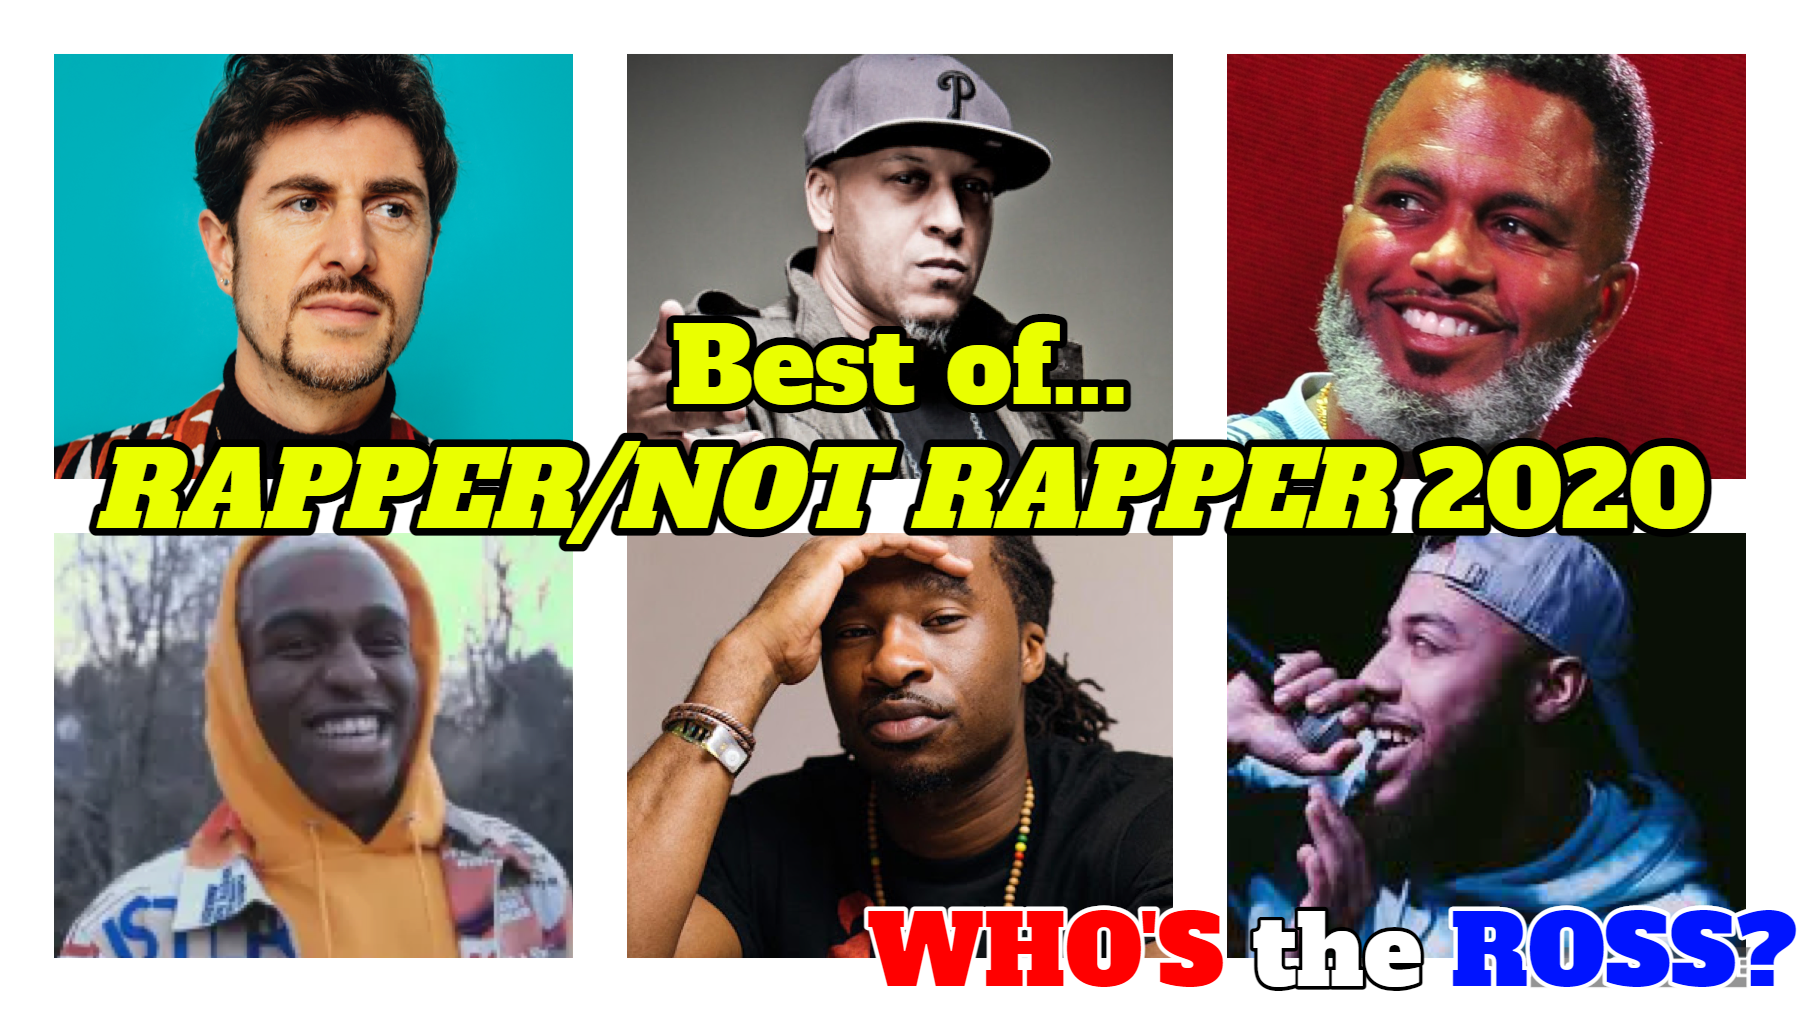 best of rapper rap hip-hop artist mc digable planets pharcyde paul white portland music game show comedy funny Who's the Ross? aaron host Paul White Bocha Rasheed Jamal Donte Thomas